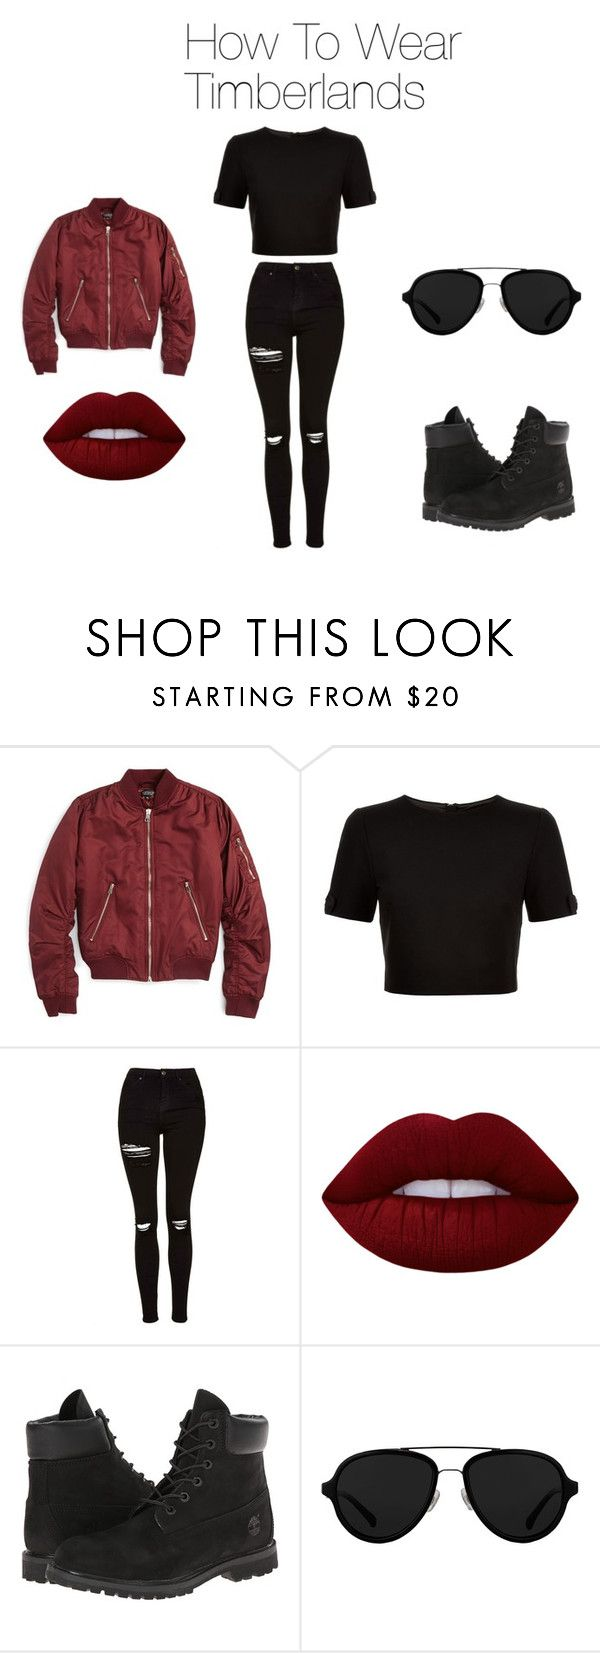 """How To Wear Timberlands"" by therealquelsi on Polyvore featuring Topshop, Ted Baker, Lime Crime, Timberland and 3.1 Phillip Lim"